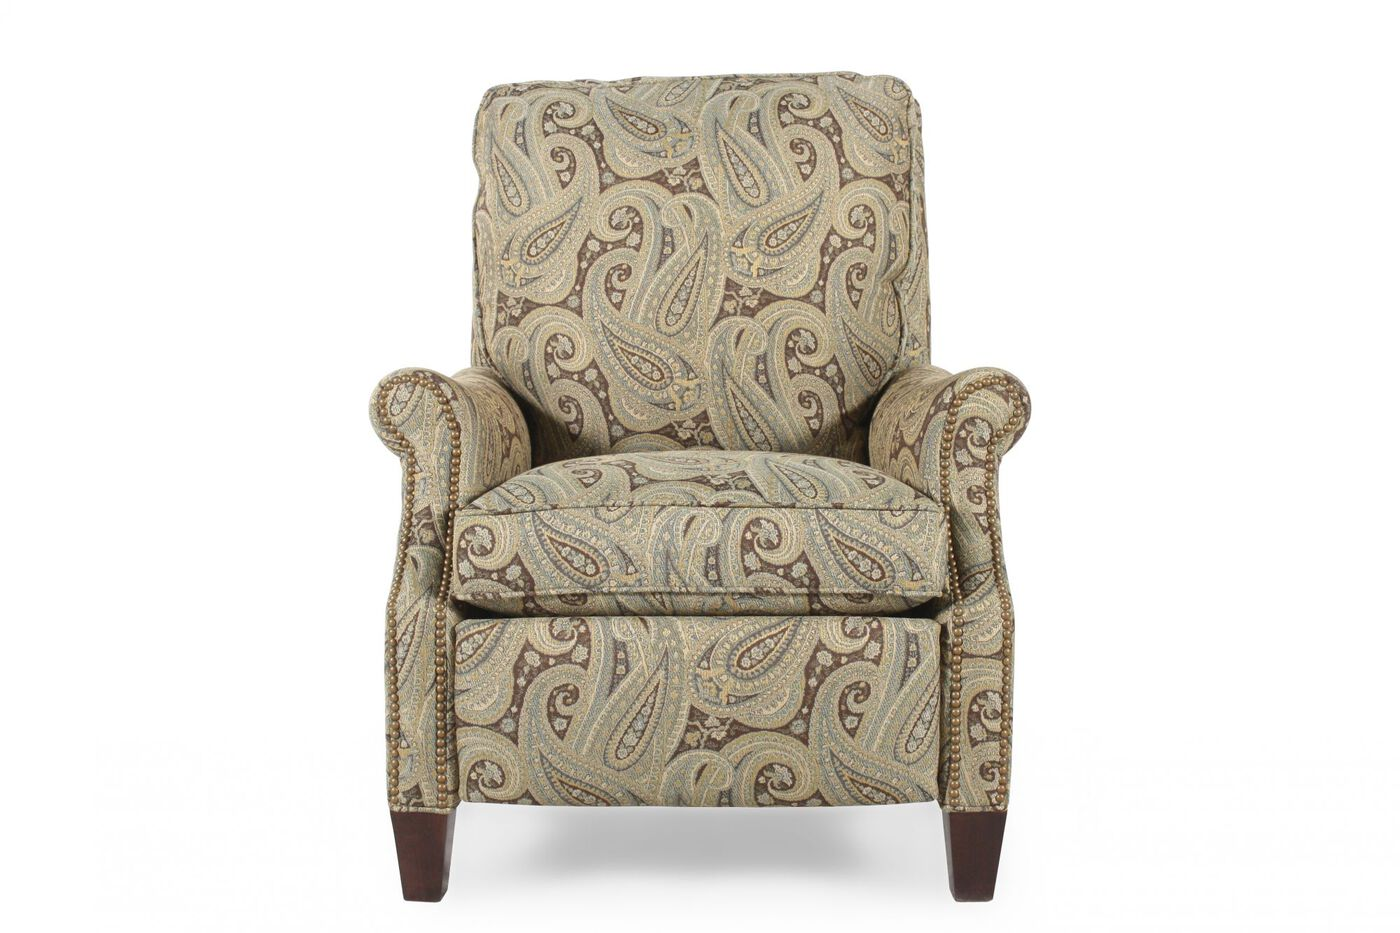 Contemporary paisley patterned 33 5 pressback recliner mathis brothers furniture for Mathis brothers living room furniture